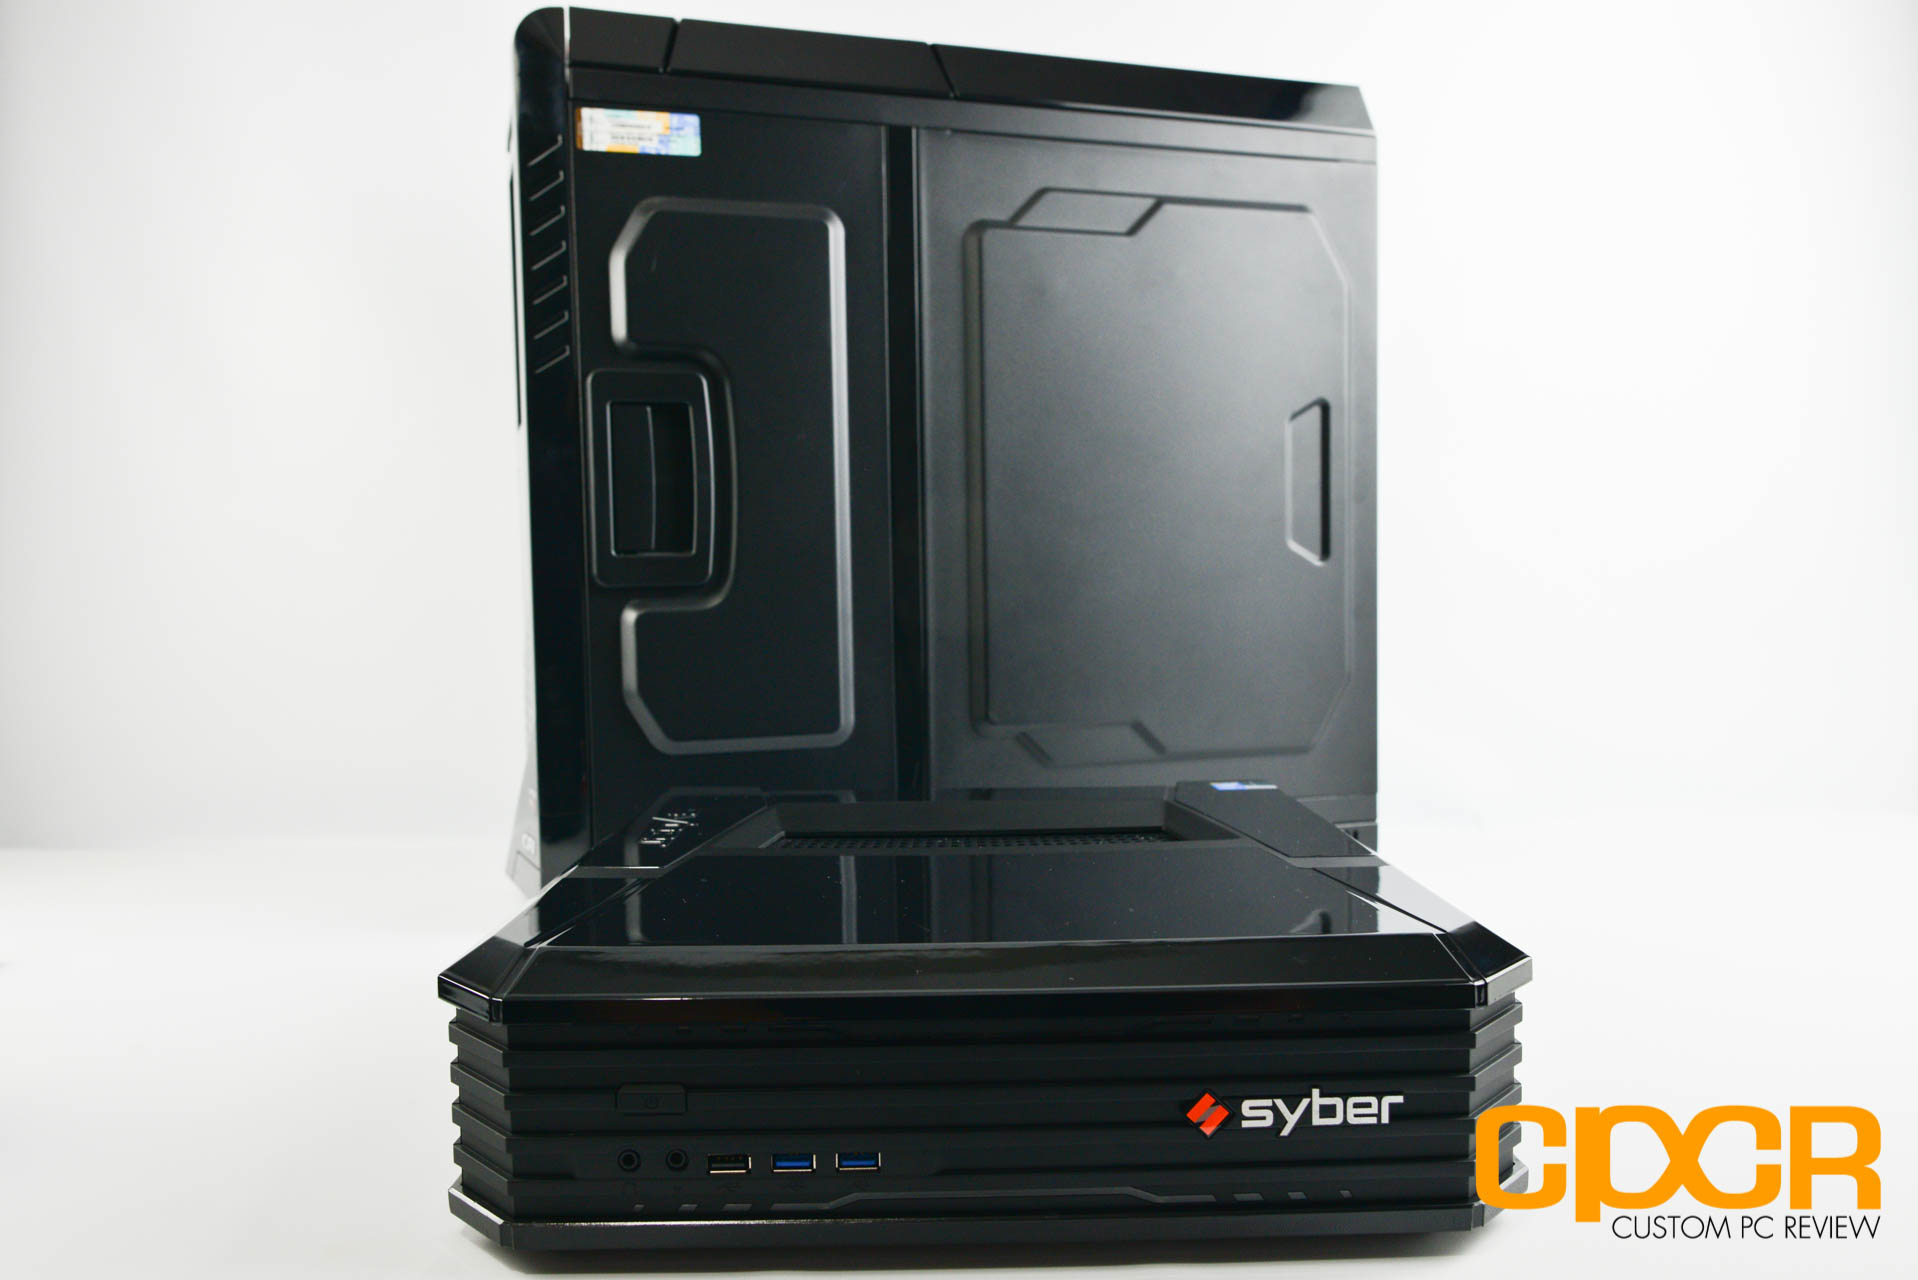 Review Syber Vapor Xtreme Gaming Pc Console Custom Pc Review